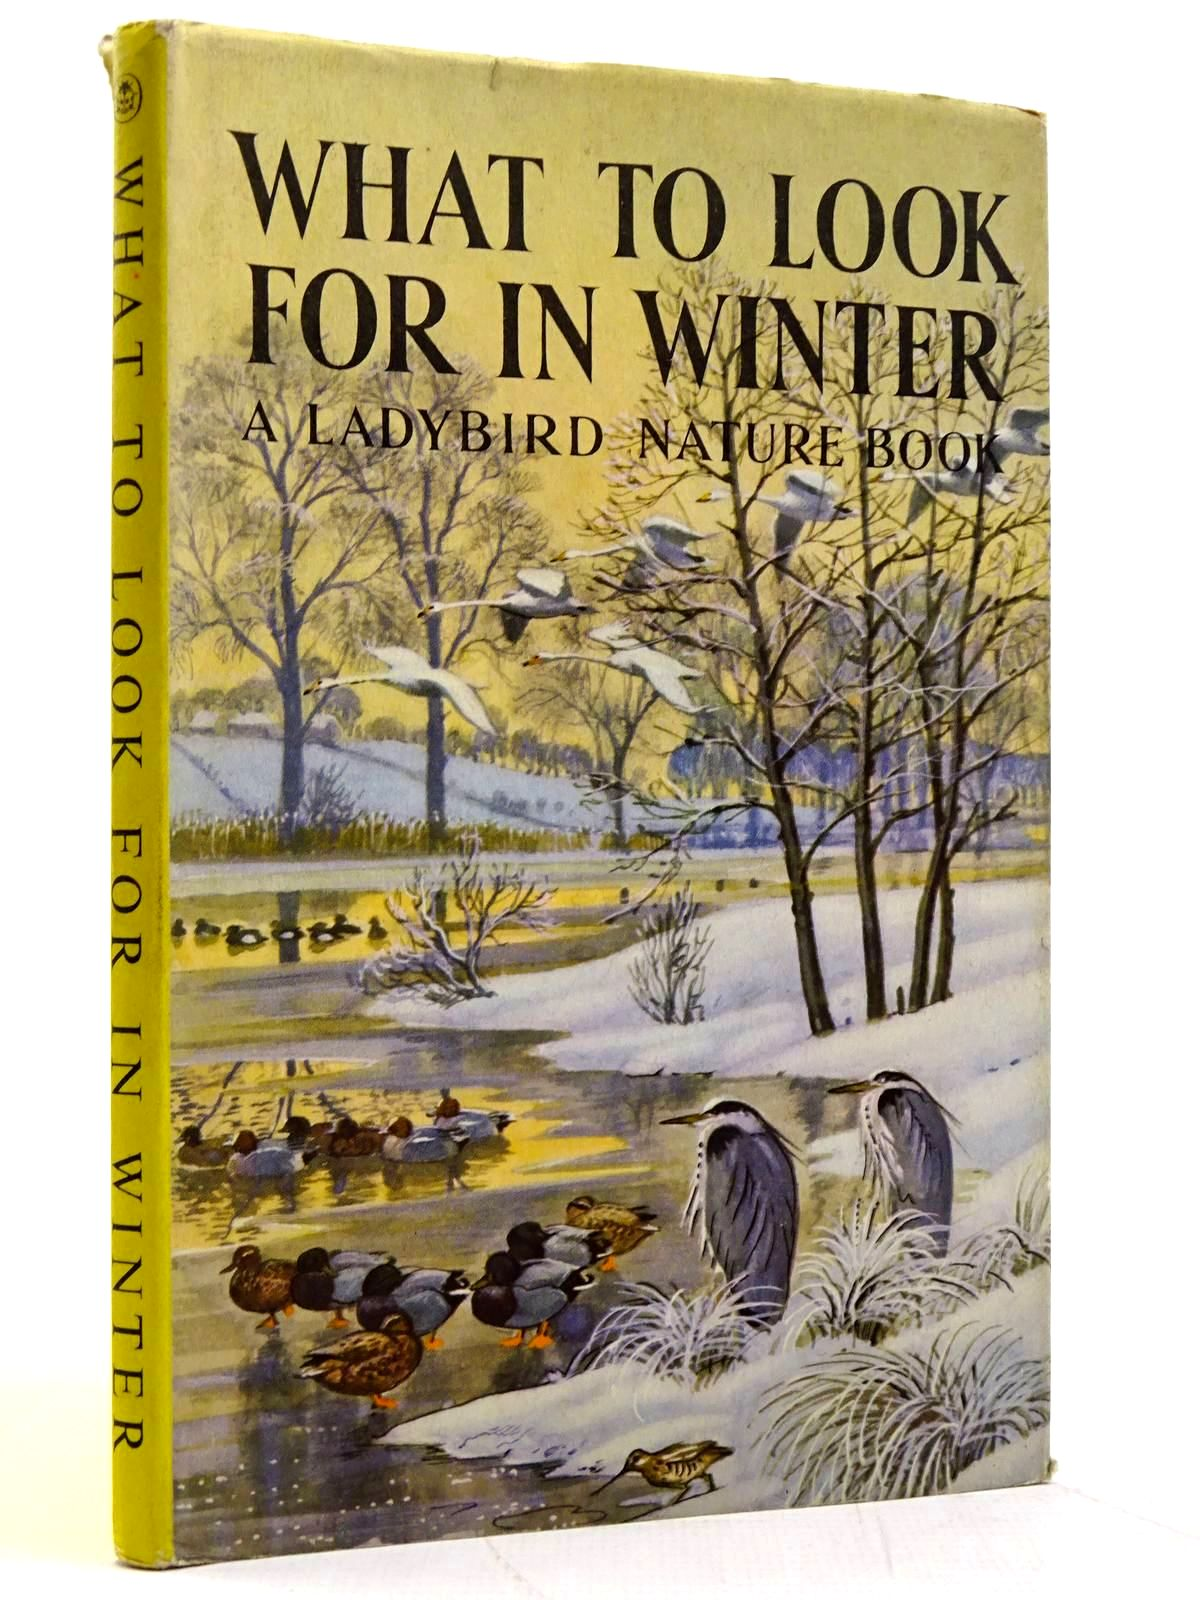 Photo of WHAT TO LOOK FOR IN WINTER written by Watson, E.L. Grant illustrated by Tunnicliffe, C.F. published by Wills & Hepworth Ltd. (STOCK CODE: 2131531)  for sale by Stella & Rose's Books